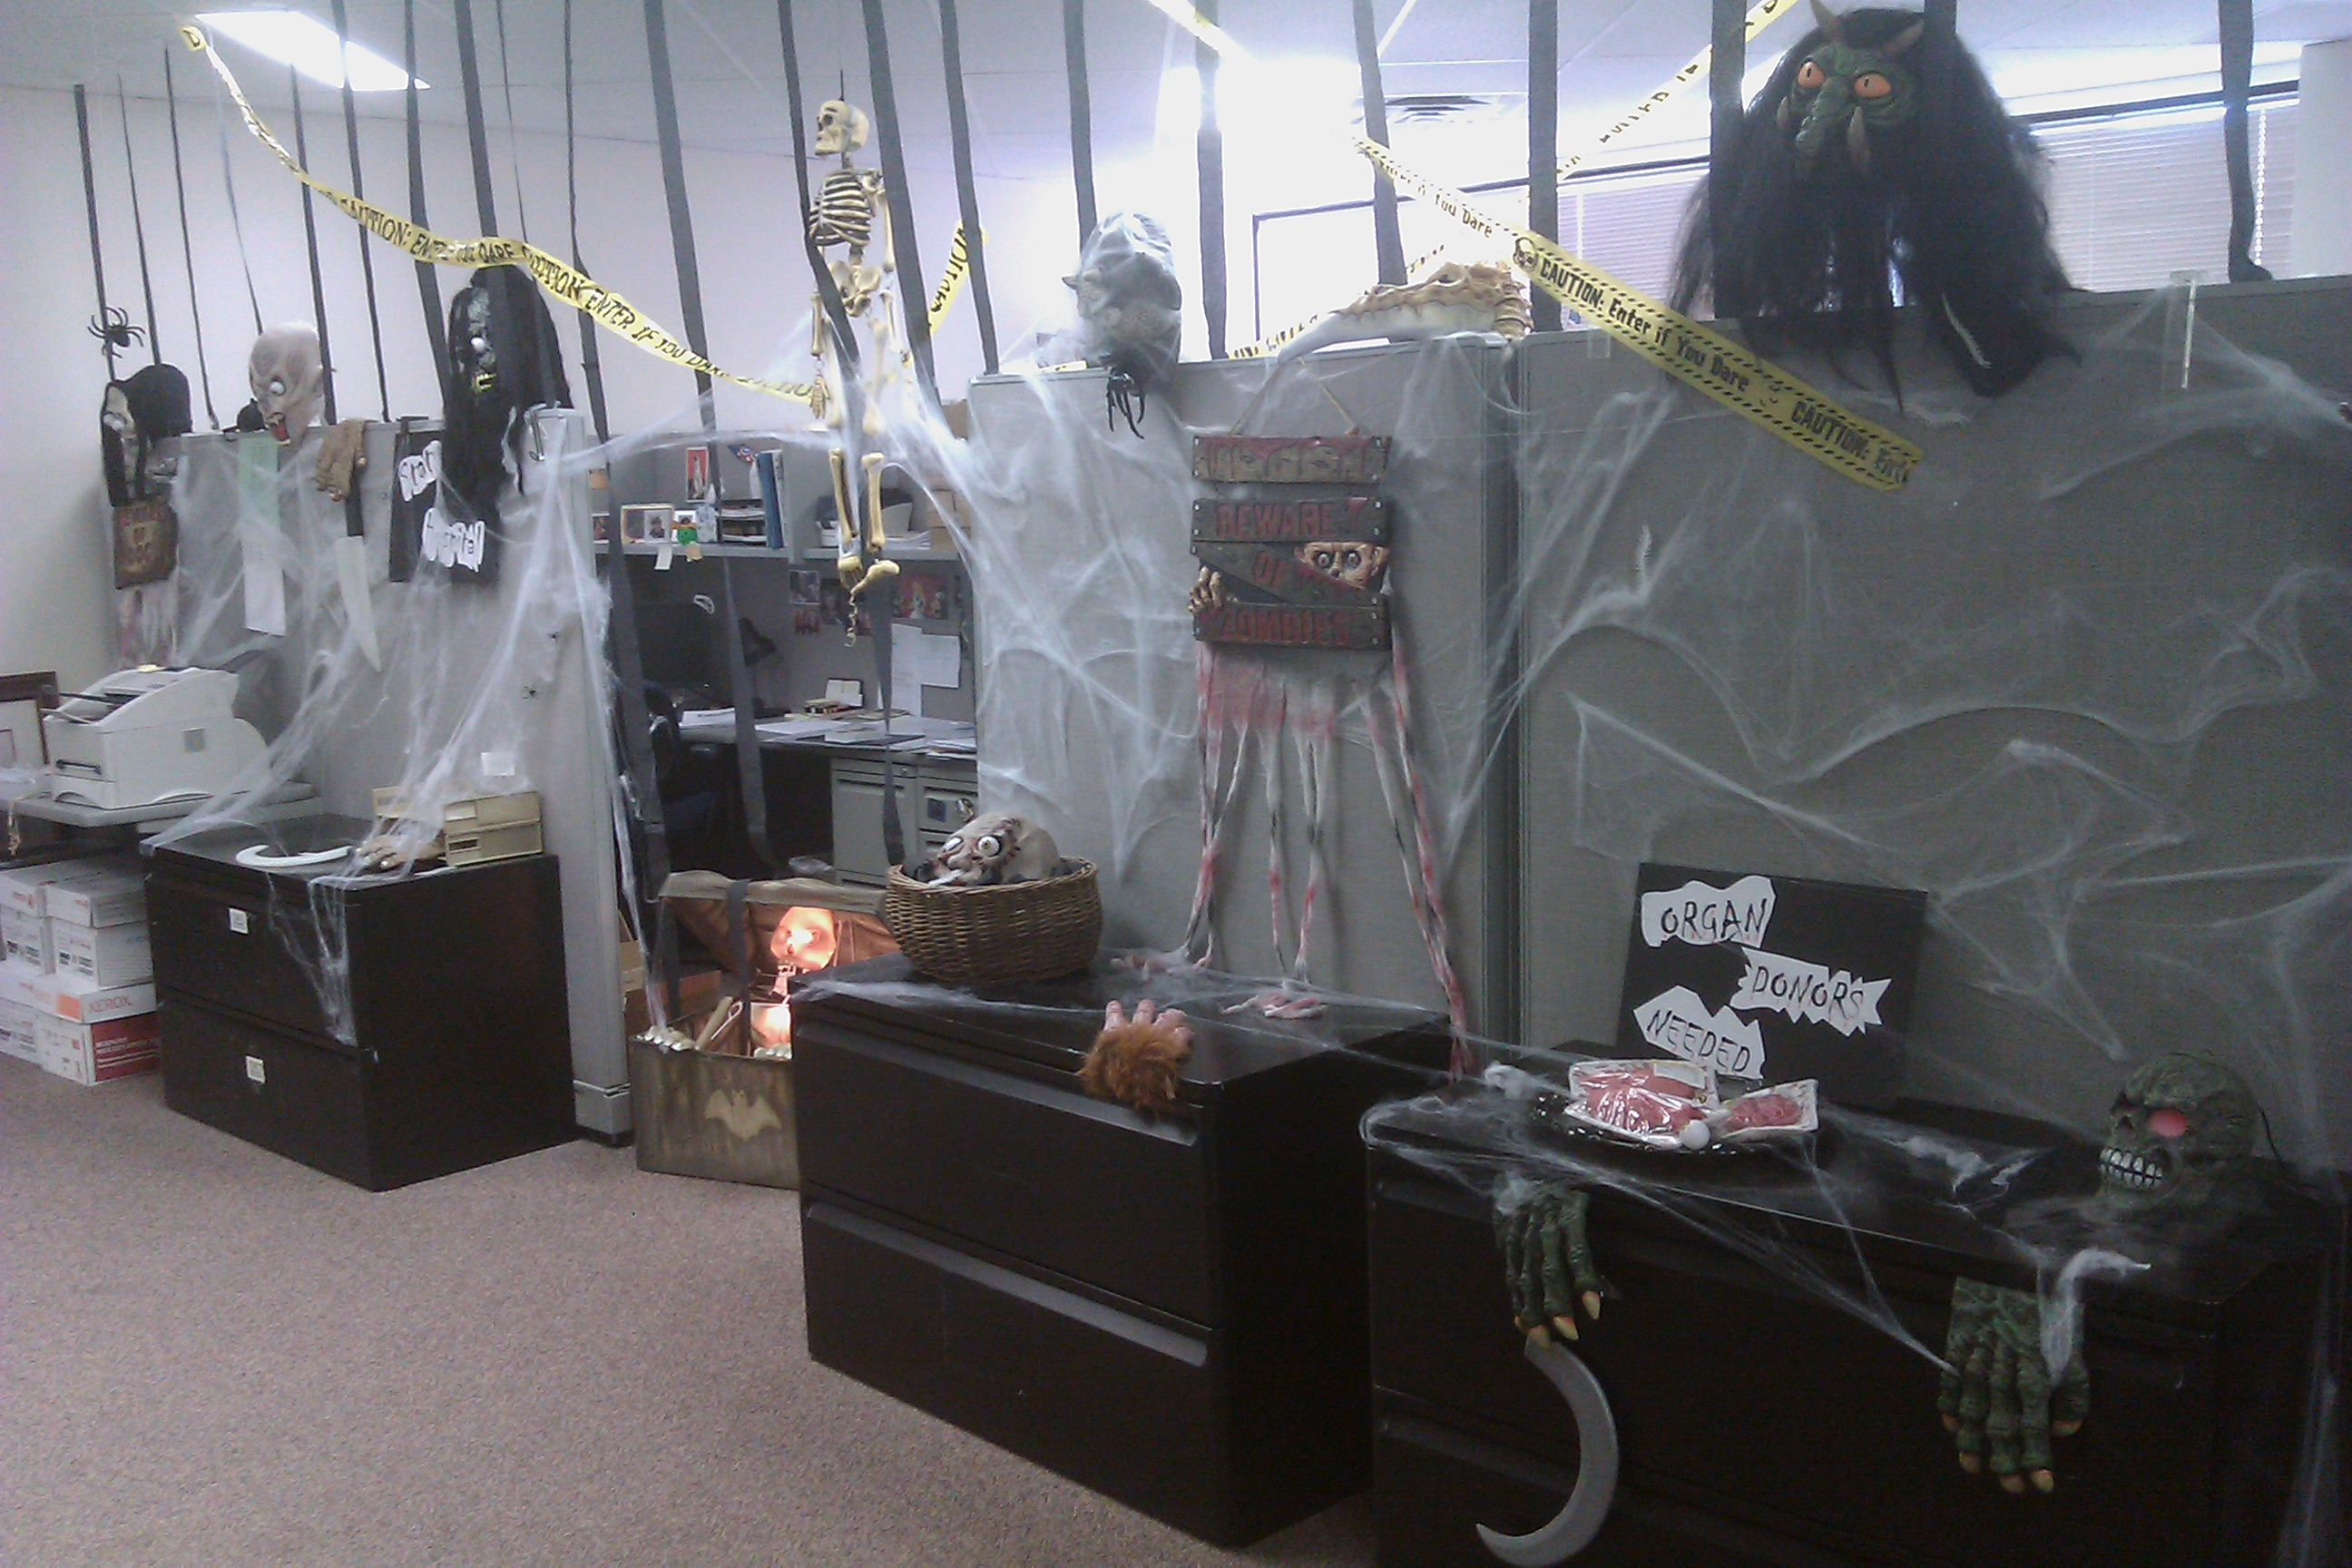 Office halloween decorations ideas - Images For U0026gt Halloween Office Themes Gothic Theme Pinterest Decor The Office And Decorations W